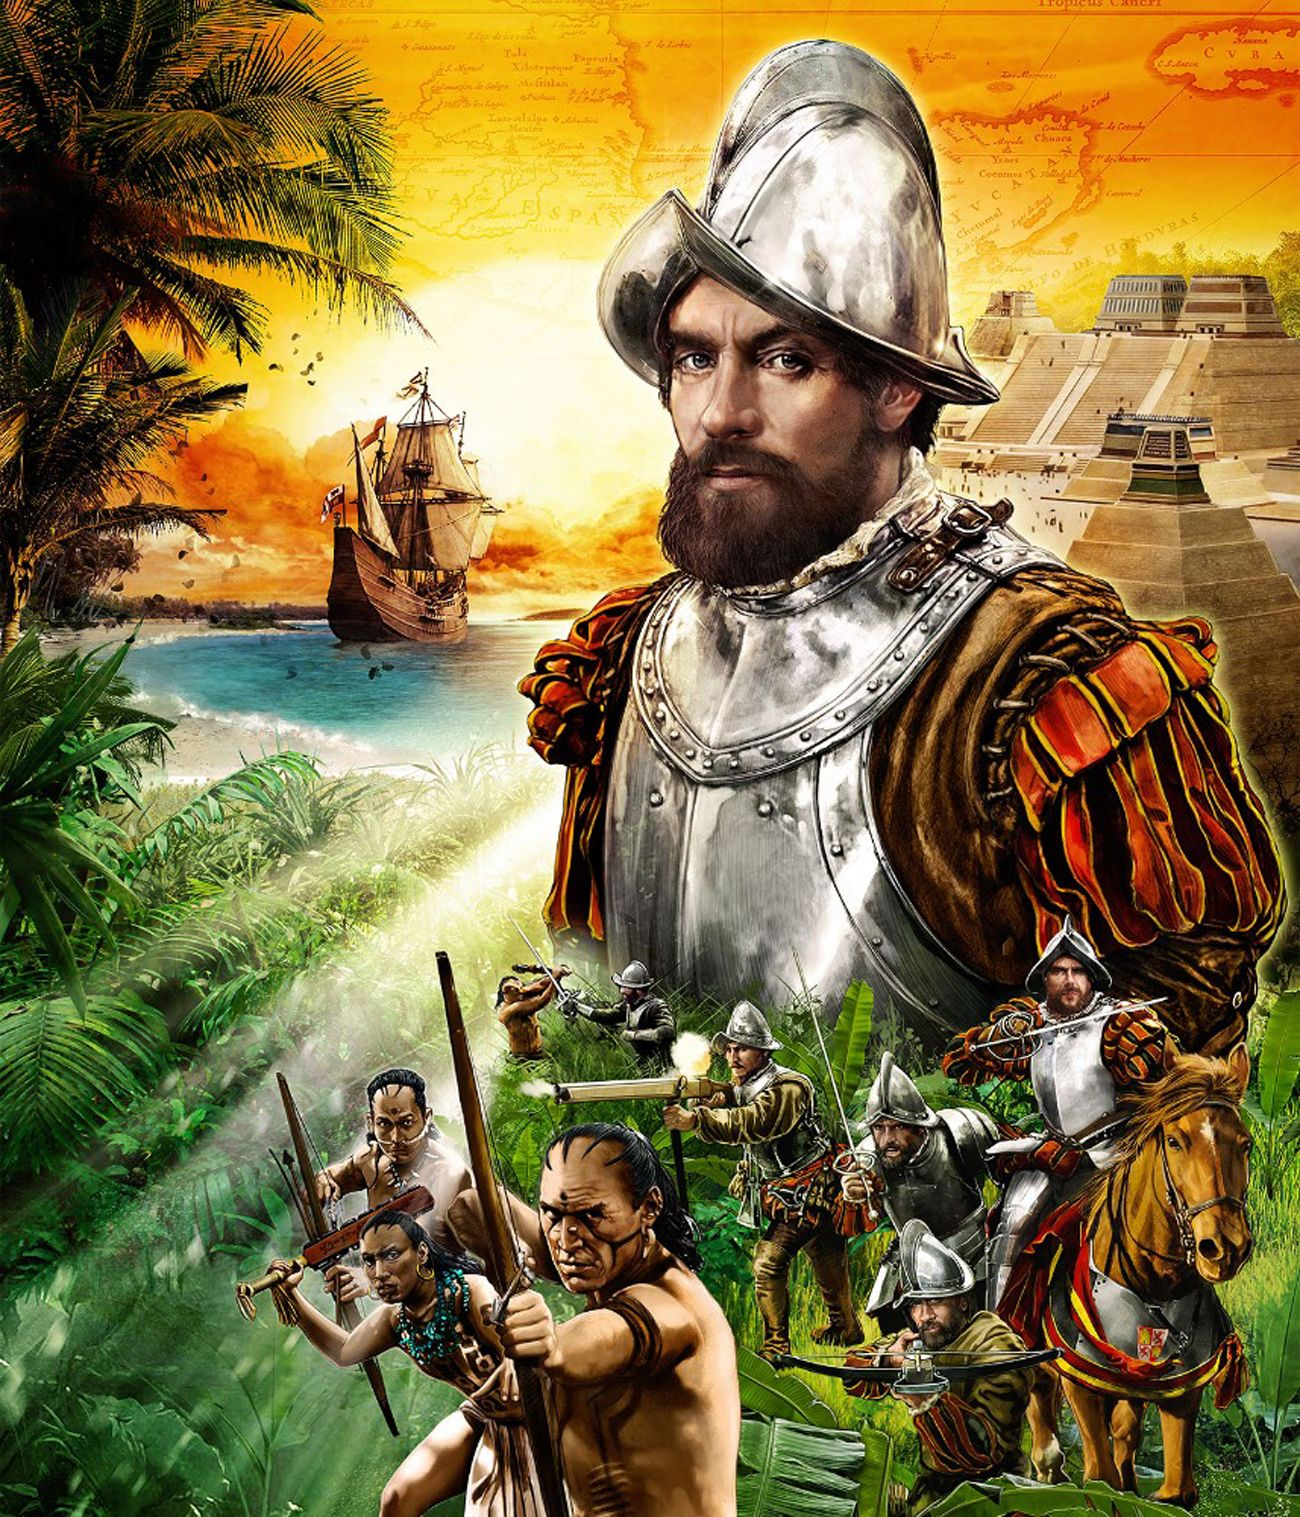 the spanish conquest Hernan was a spanish conquistador, born in 1485 he attended university at salamanca but gained a reputation of mucking around and not working very hard at age 19, cortes moved to a caribbean island of hispaniola hernan joined the conquest of cuba 6 years later he believed that the aztecs had.